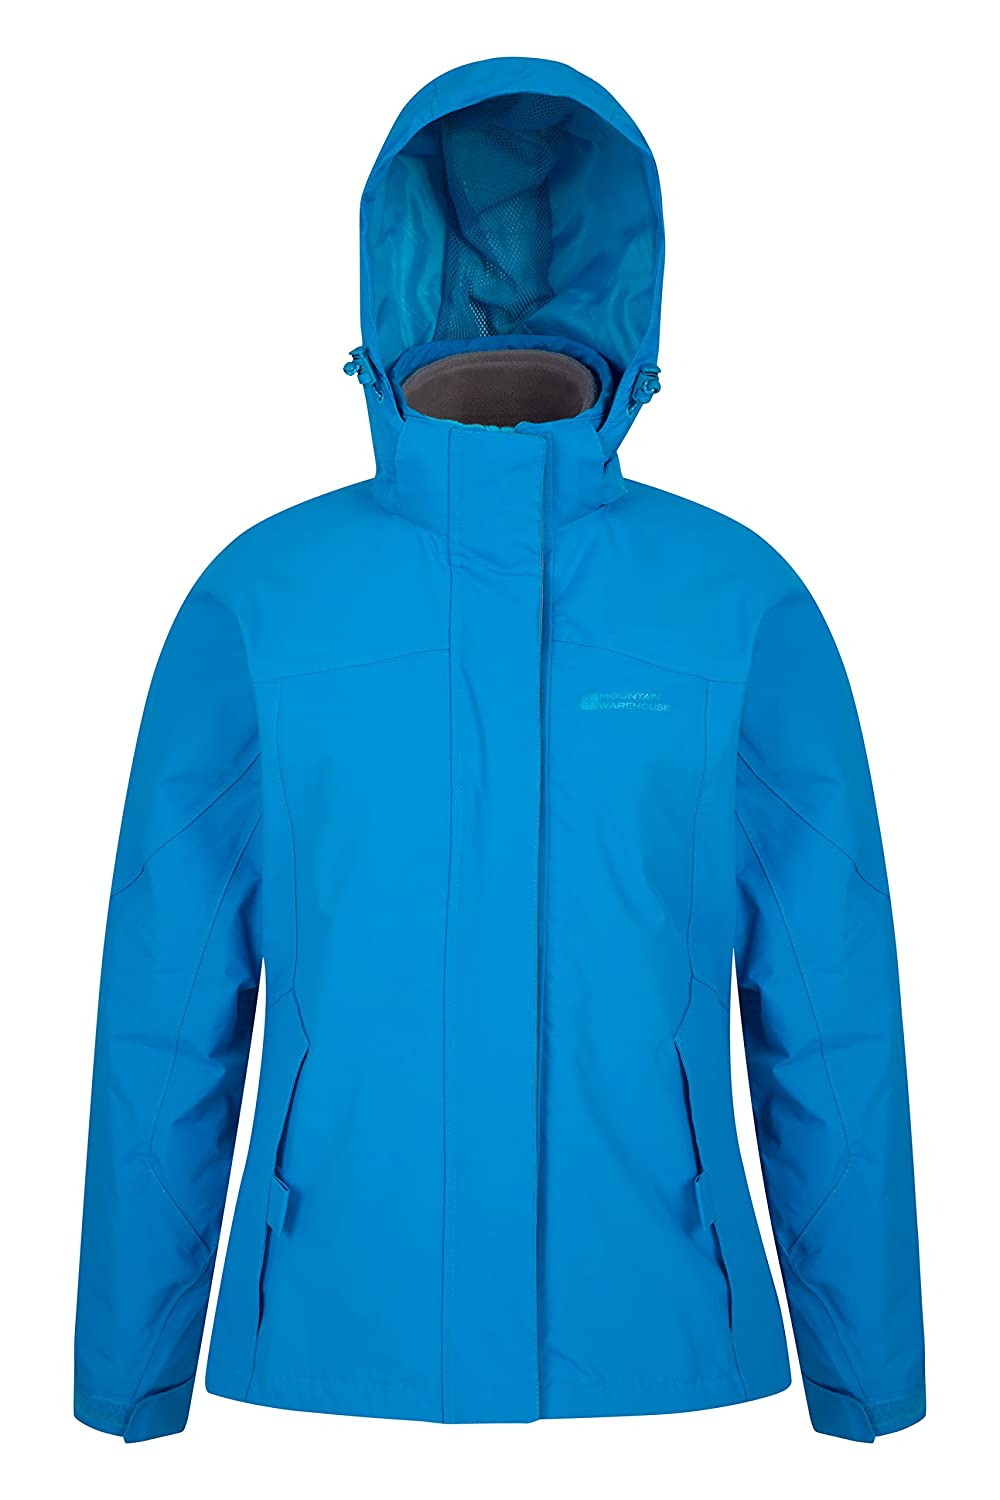 Detachable Fleece Ladies Coat Mountain Warehouse Storm 3 in 1 Womens Waterproof Jacket Rain Jacket Hiking Multiple Pockets Ideal Spring Outer for Walking